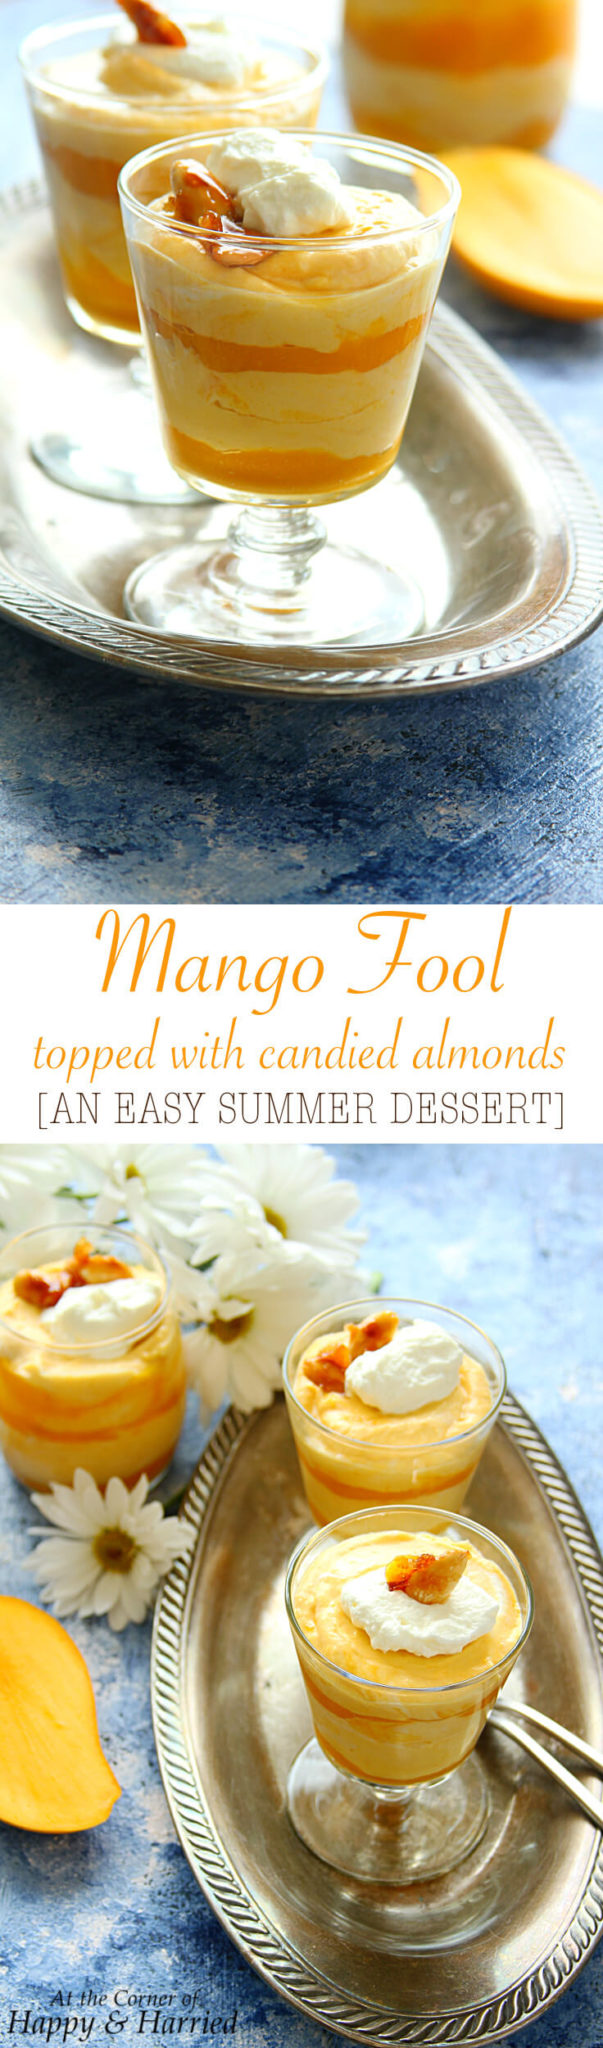 MANGO FOOL TOPPED WITH CANDIED ALMONDS - HAPPY&HARRIED